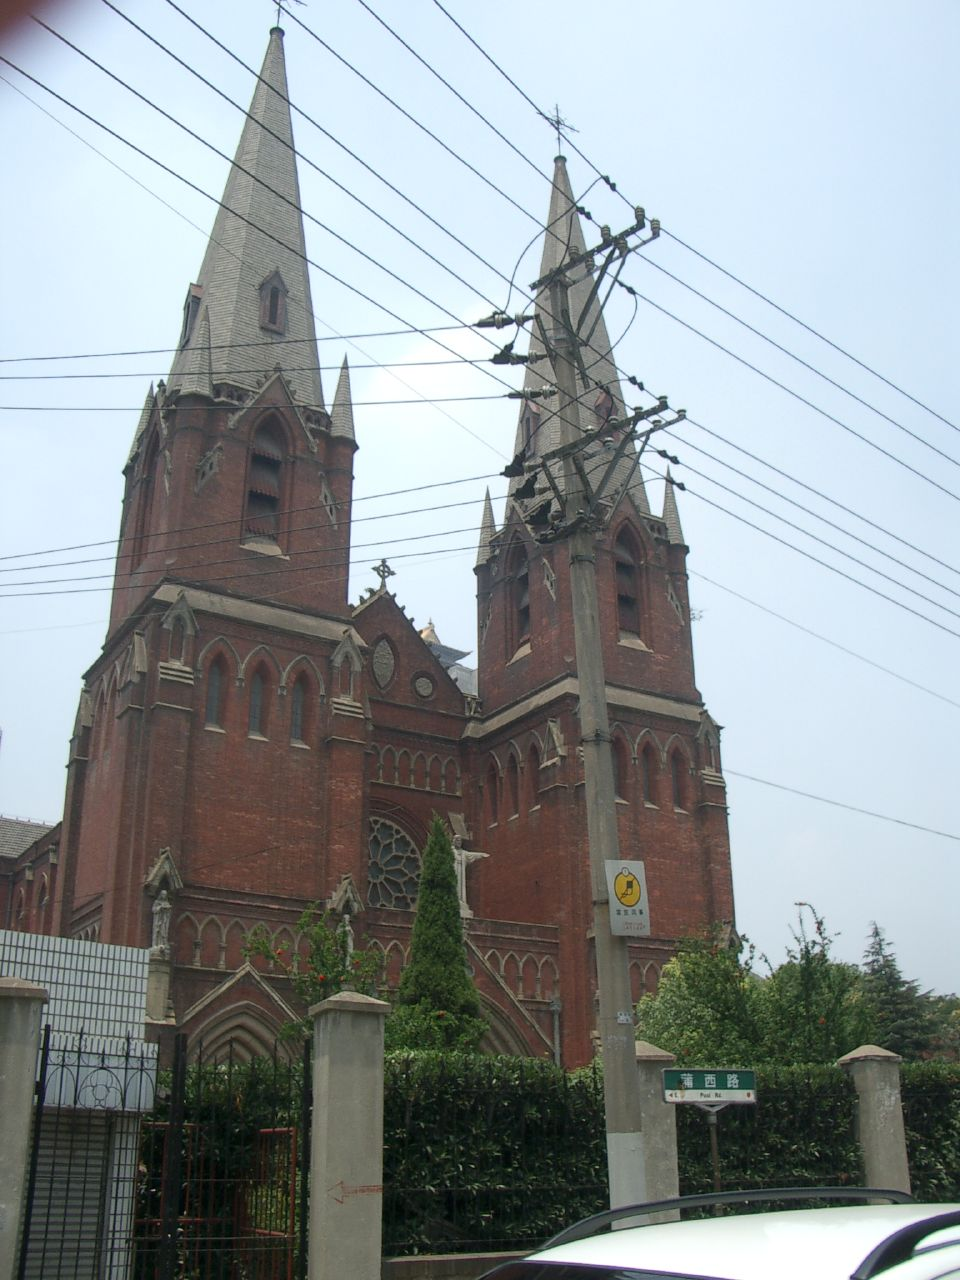 http://upload.wikimedia.org/wikipedia/commons/5/56/China_Shanghai_Catholic_Church.jpg